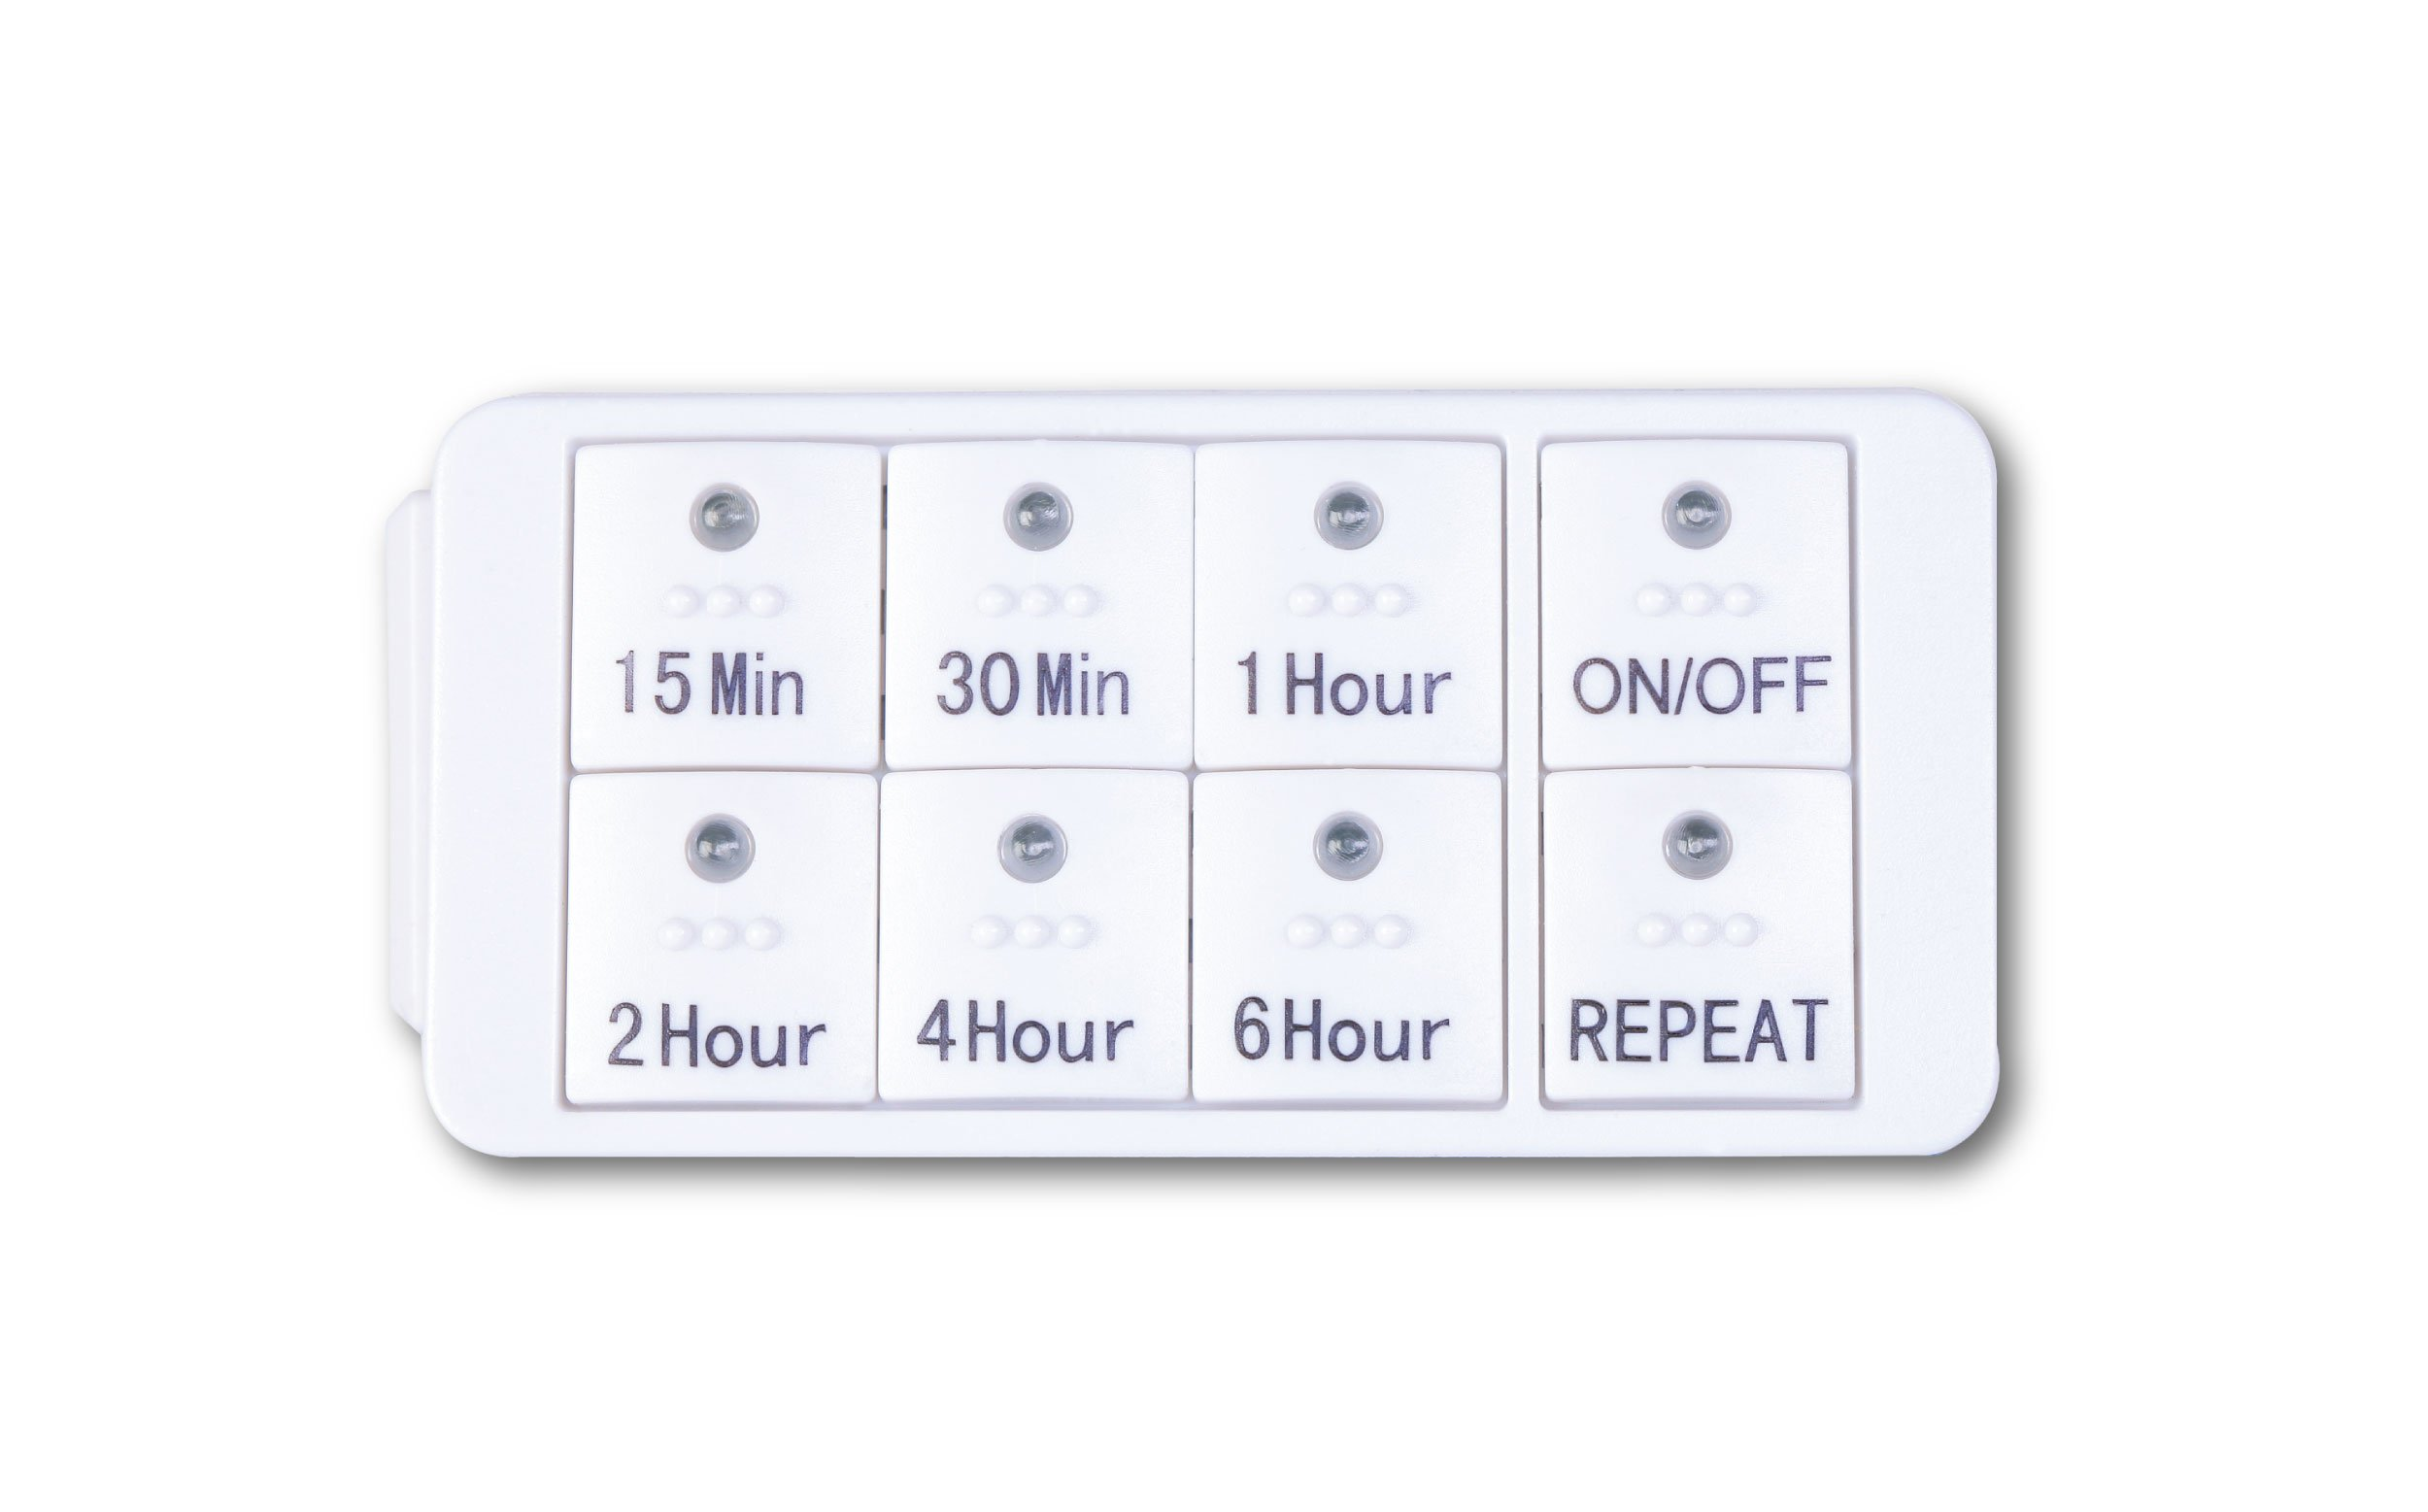 timer for 75 minutes